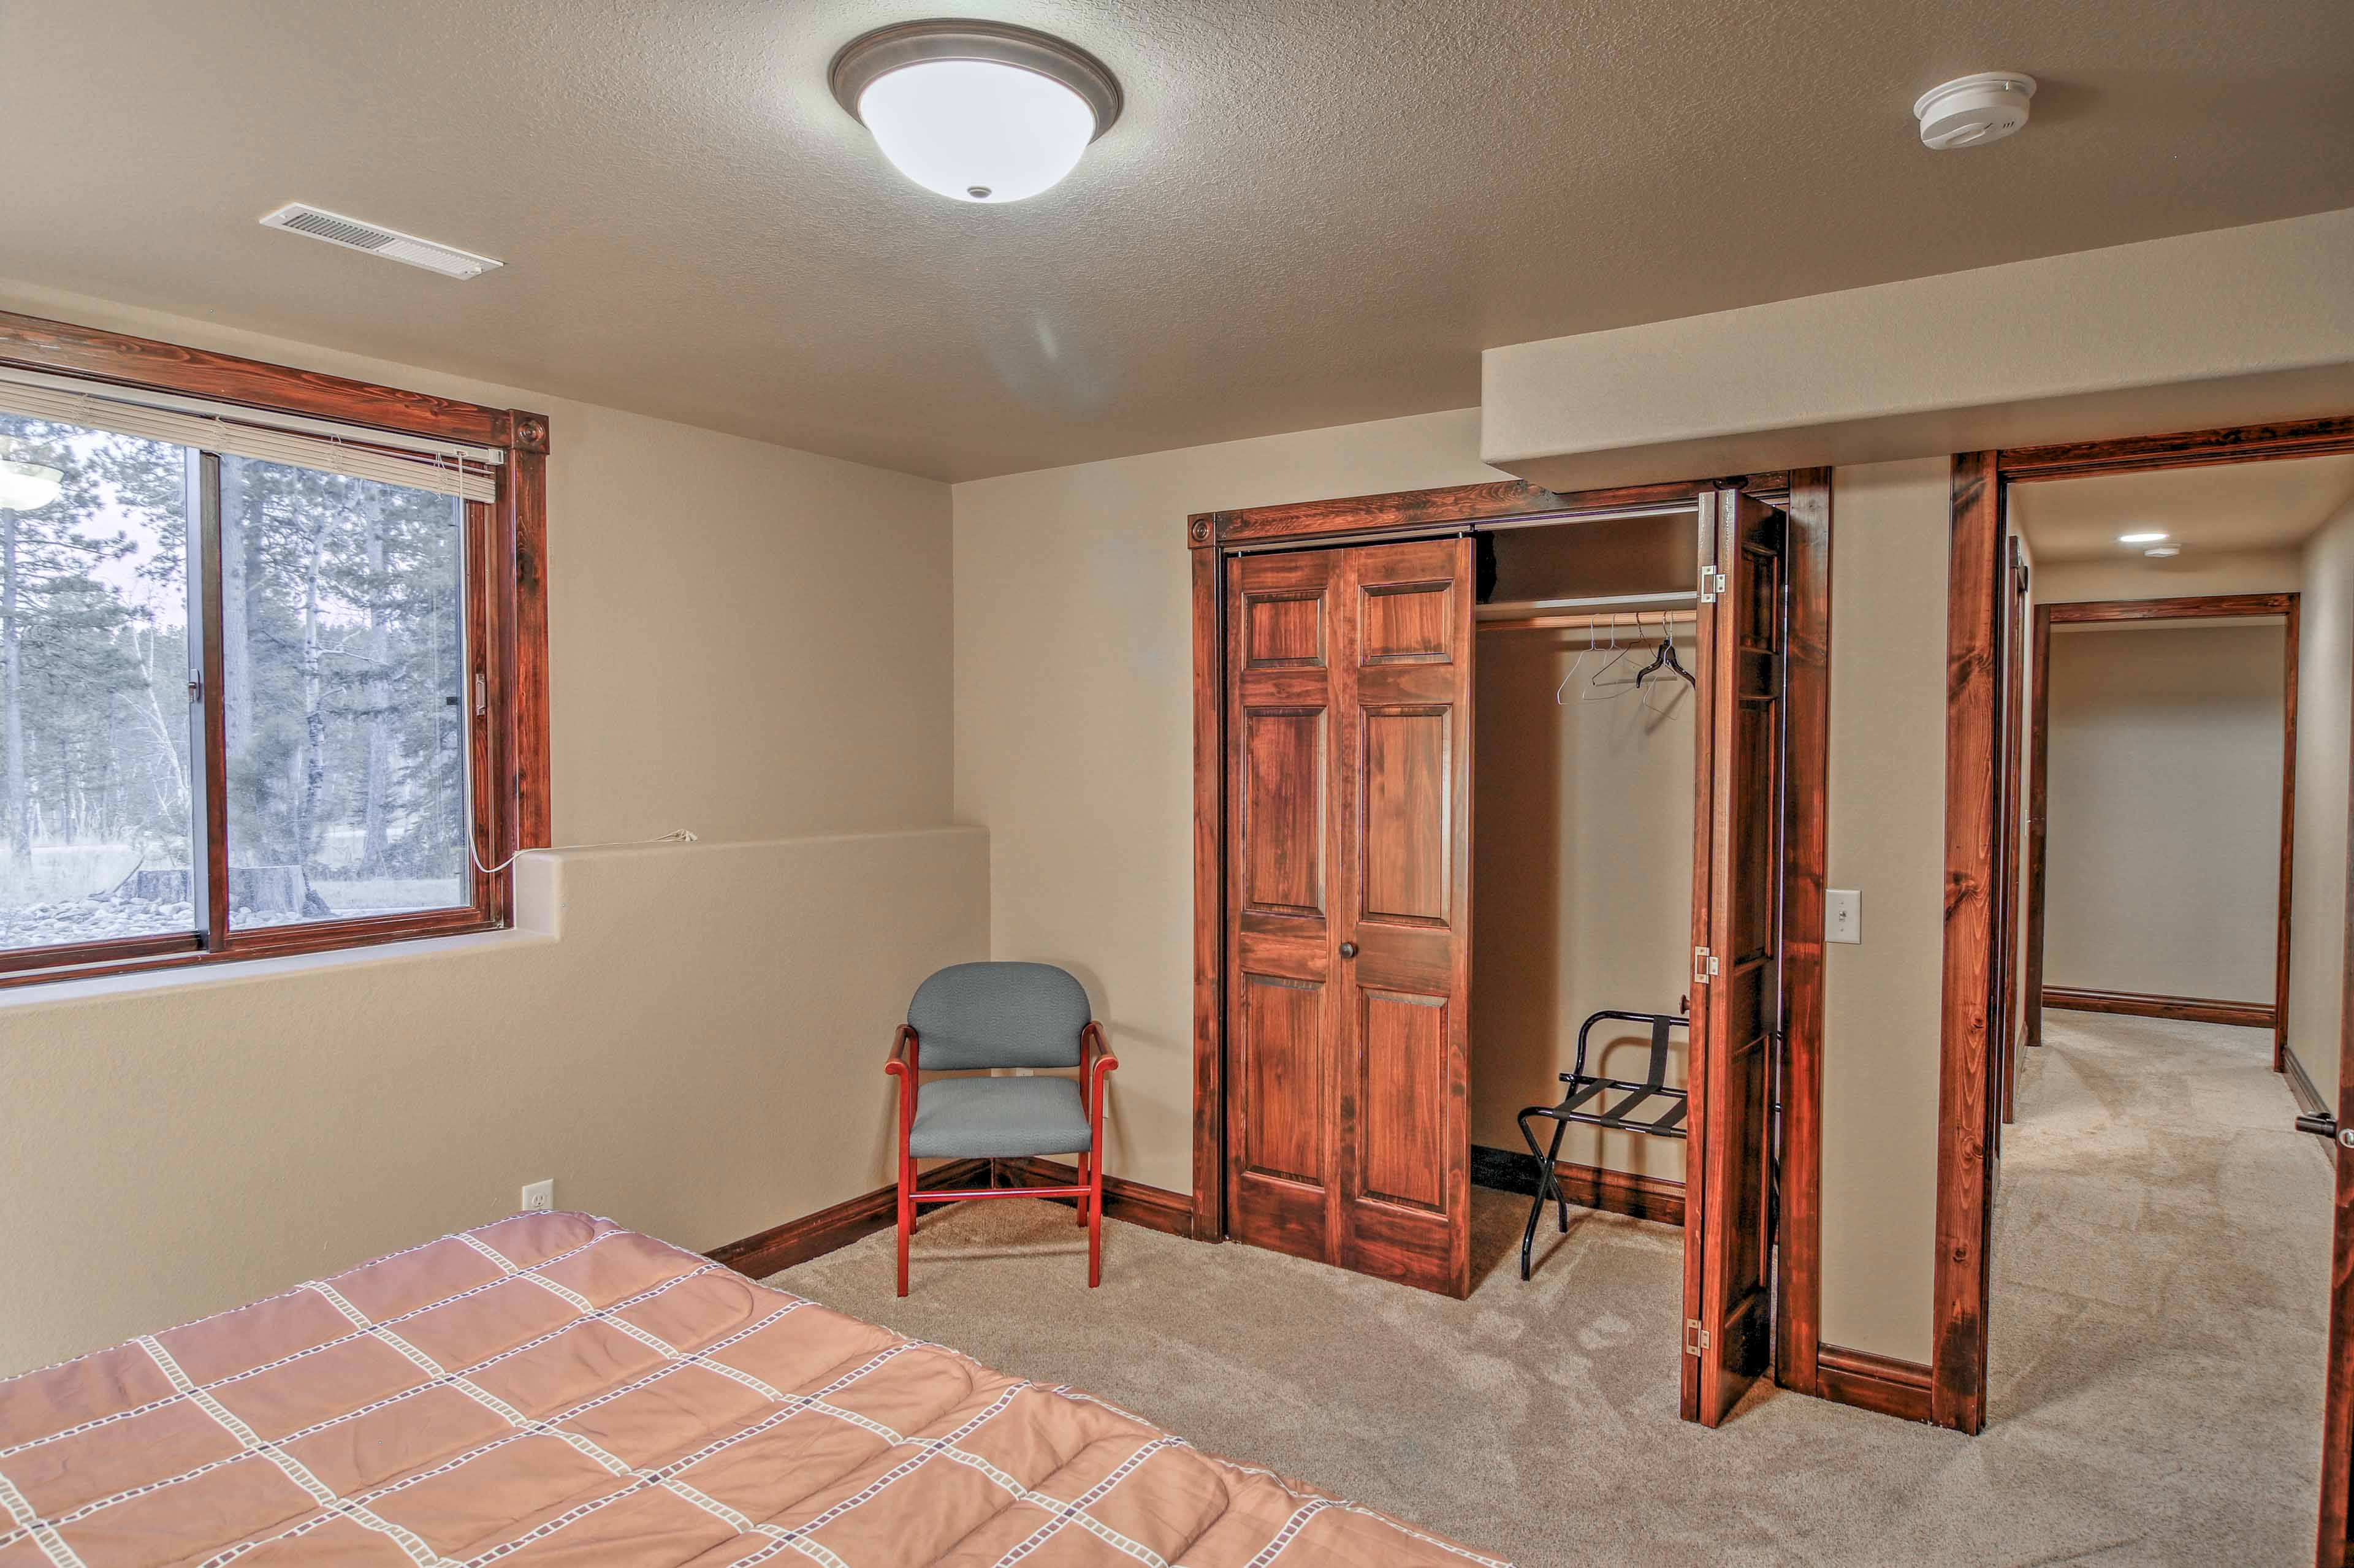 The lower level features 2 additional bedrooms, providing space to accommodate 12 guests on beds.